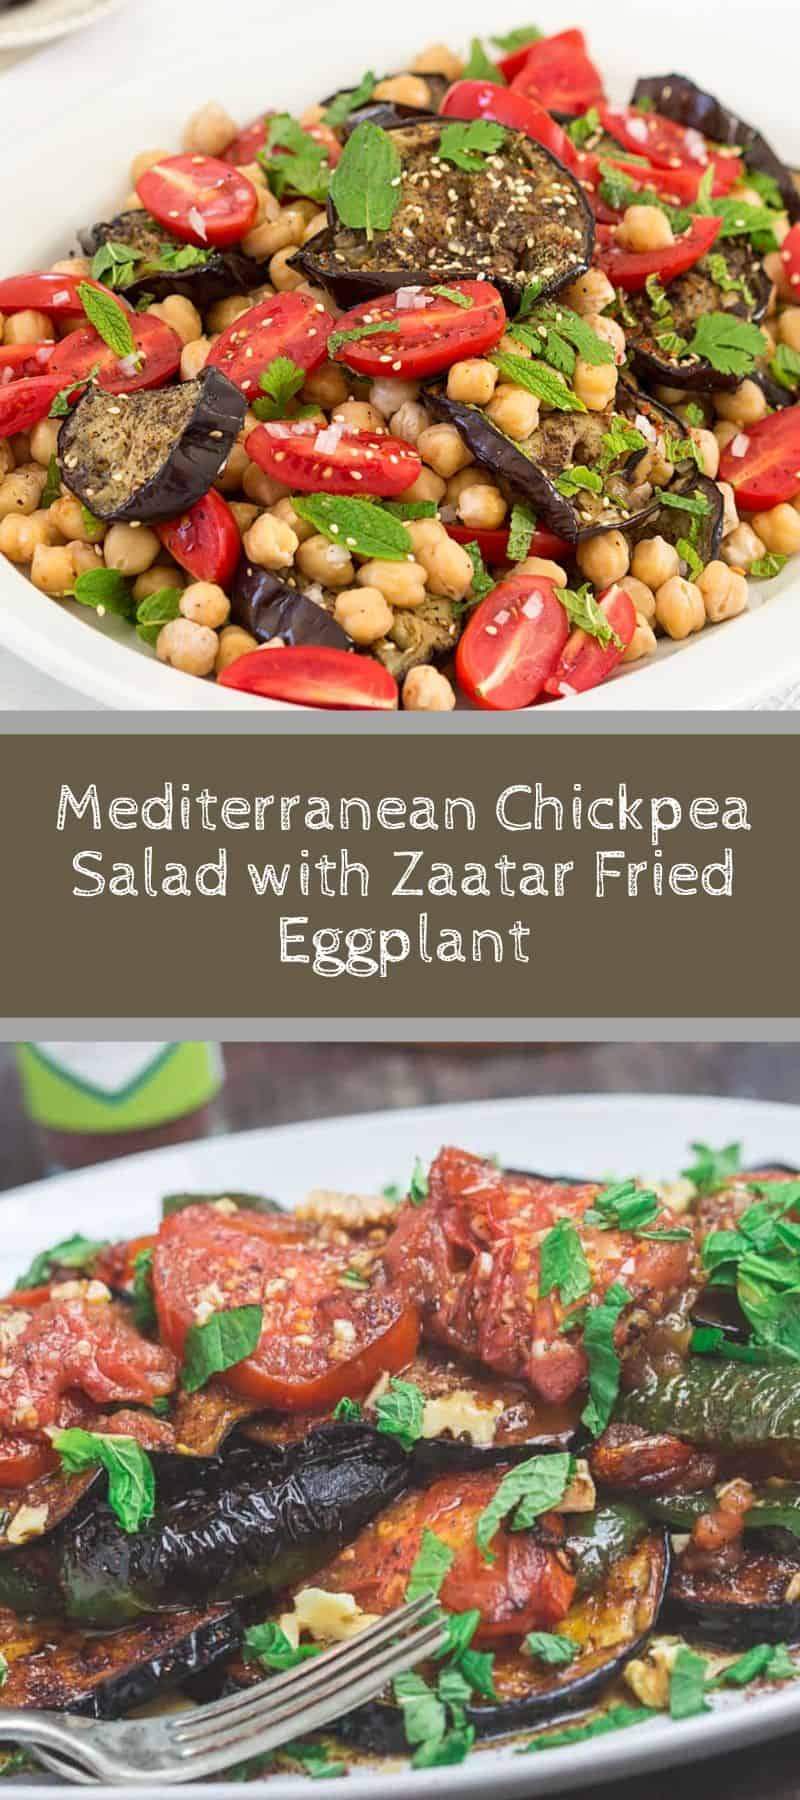 Mediterranean Chickpea Salad with Zaatar Fried Eggplant 3